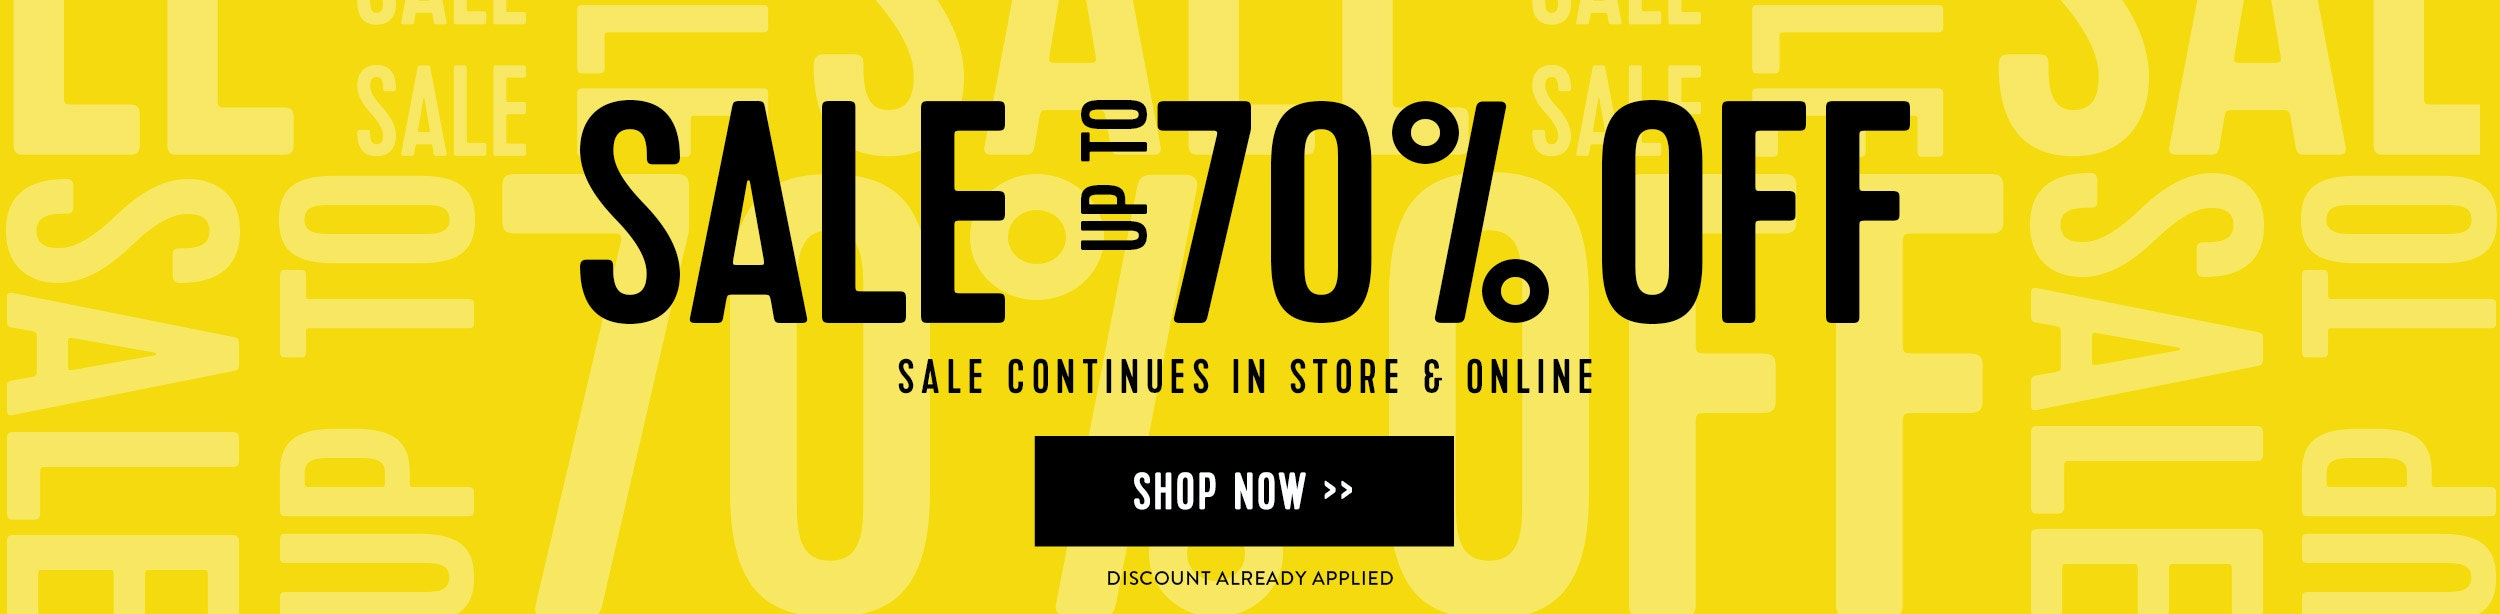 Mens Clothing on Sale - up to 70% Off